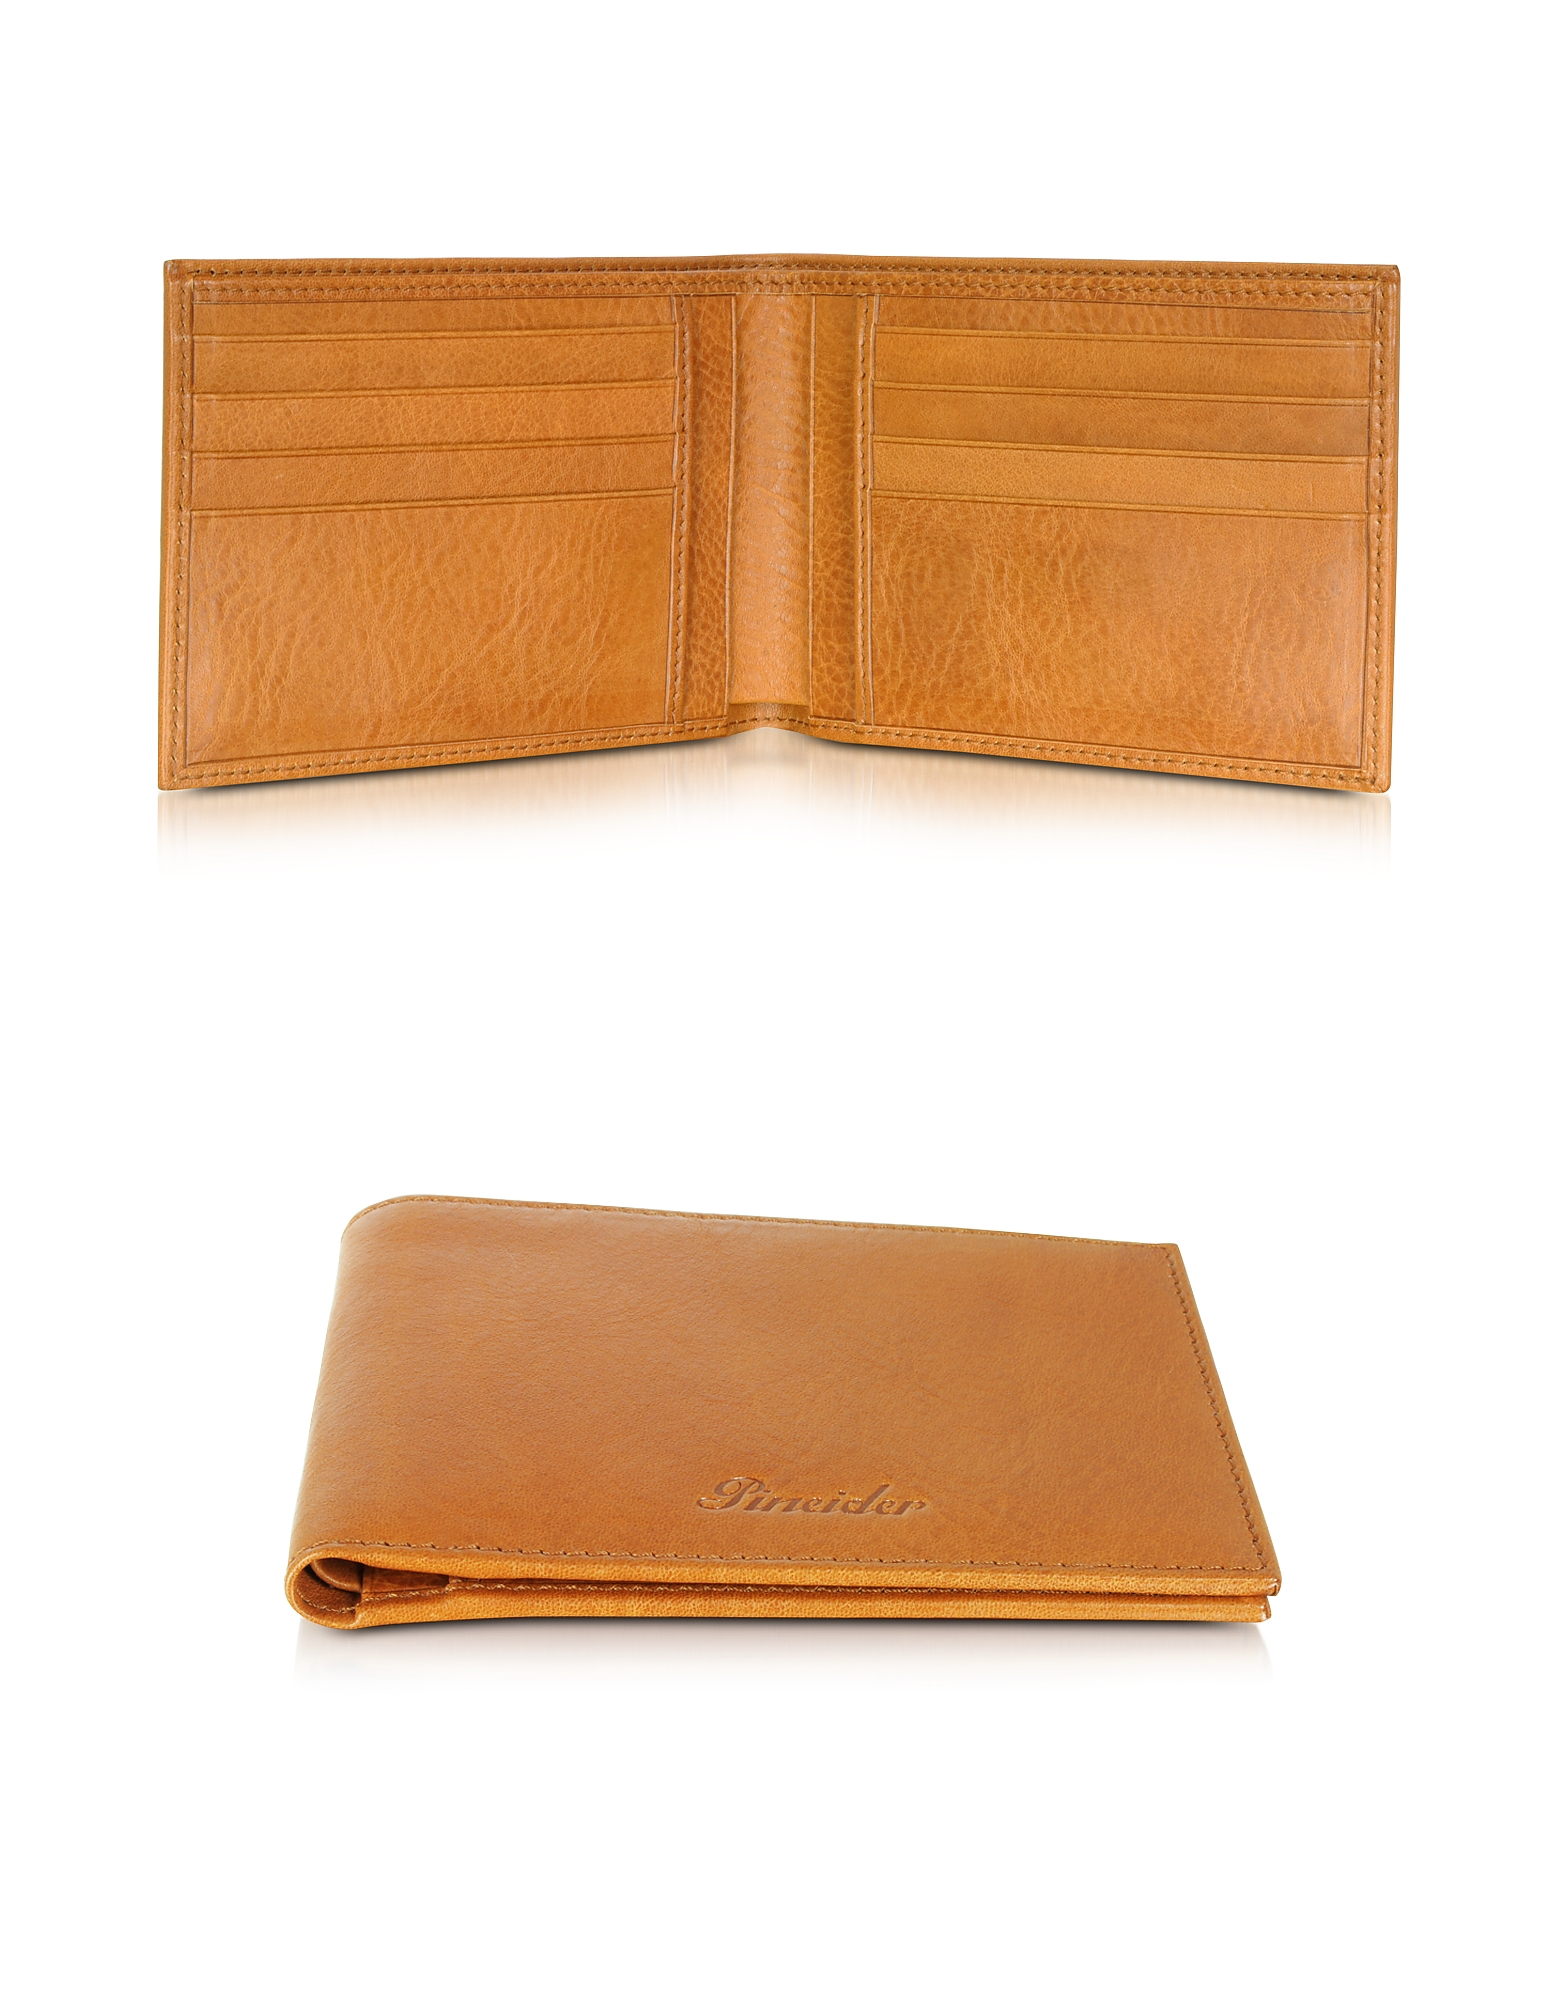 Pineider Wallets, Country Cognac Leather Billfold Wallet